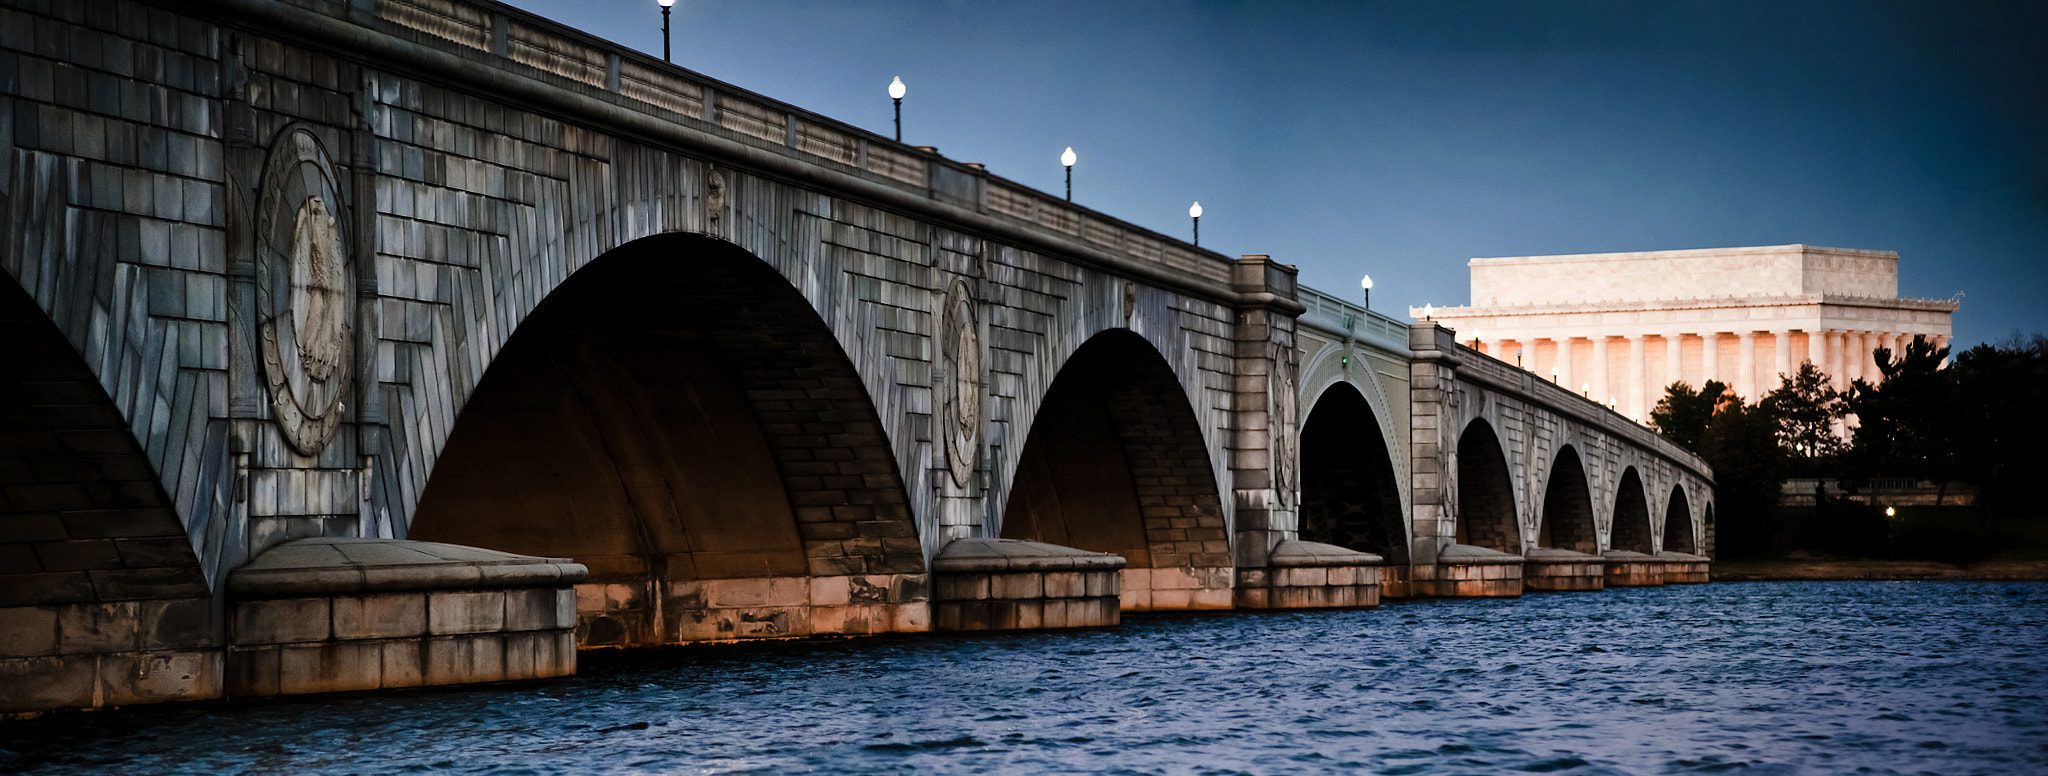 Photograph Across the Potomac River, Washington DC by Craig Hudson on 500px